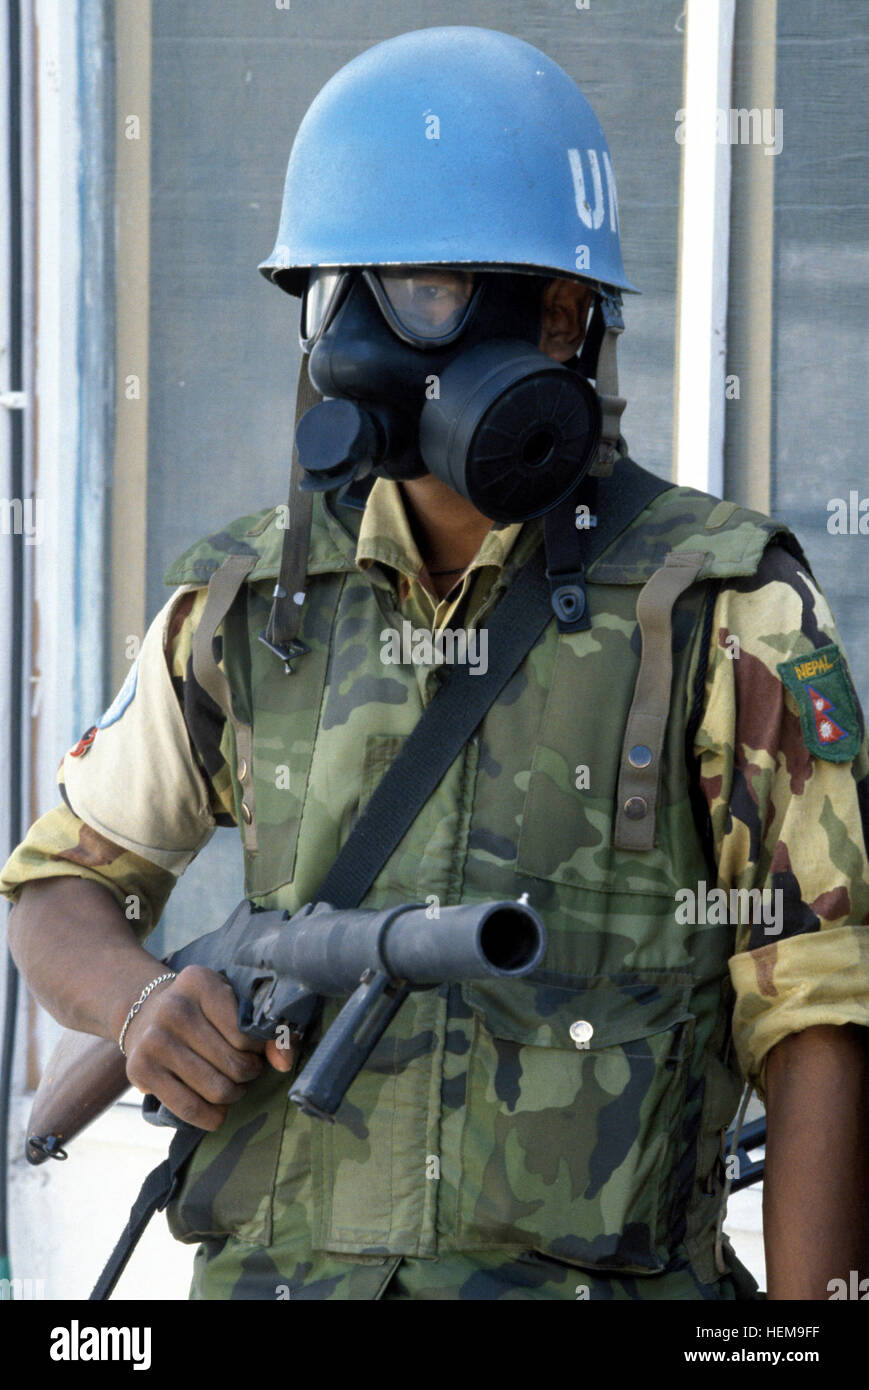 A protective mask and grenade launcher are part of the uniform of this Nepalese soldier.  He is assigned to the - Stock Image